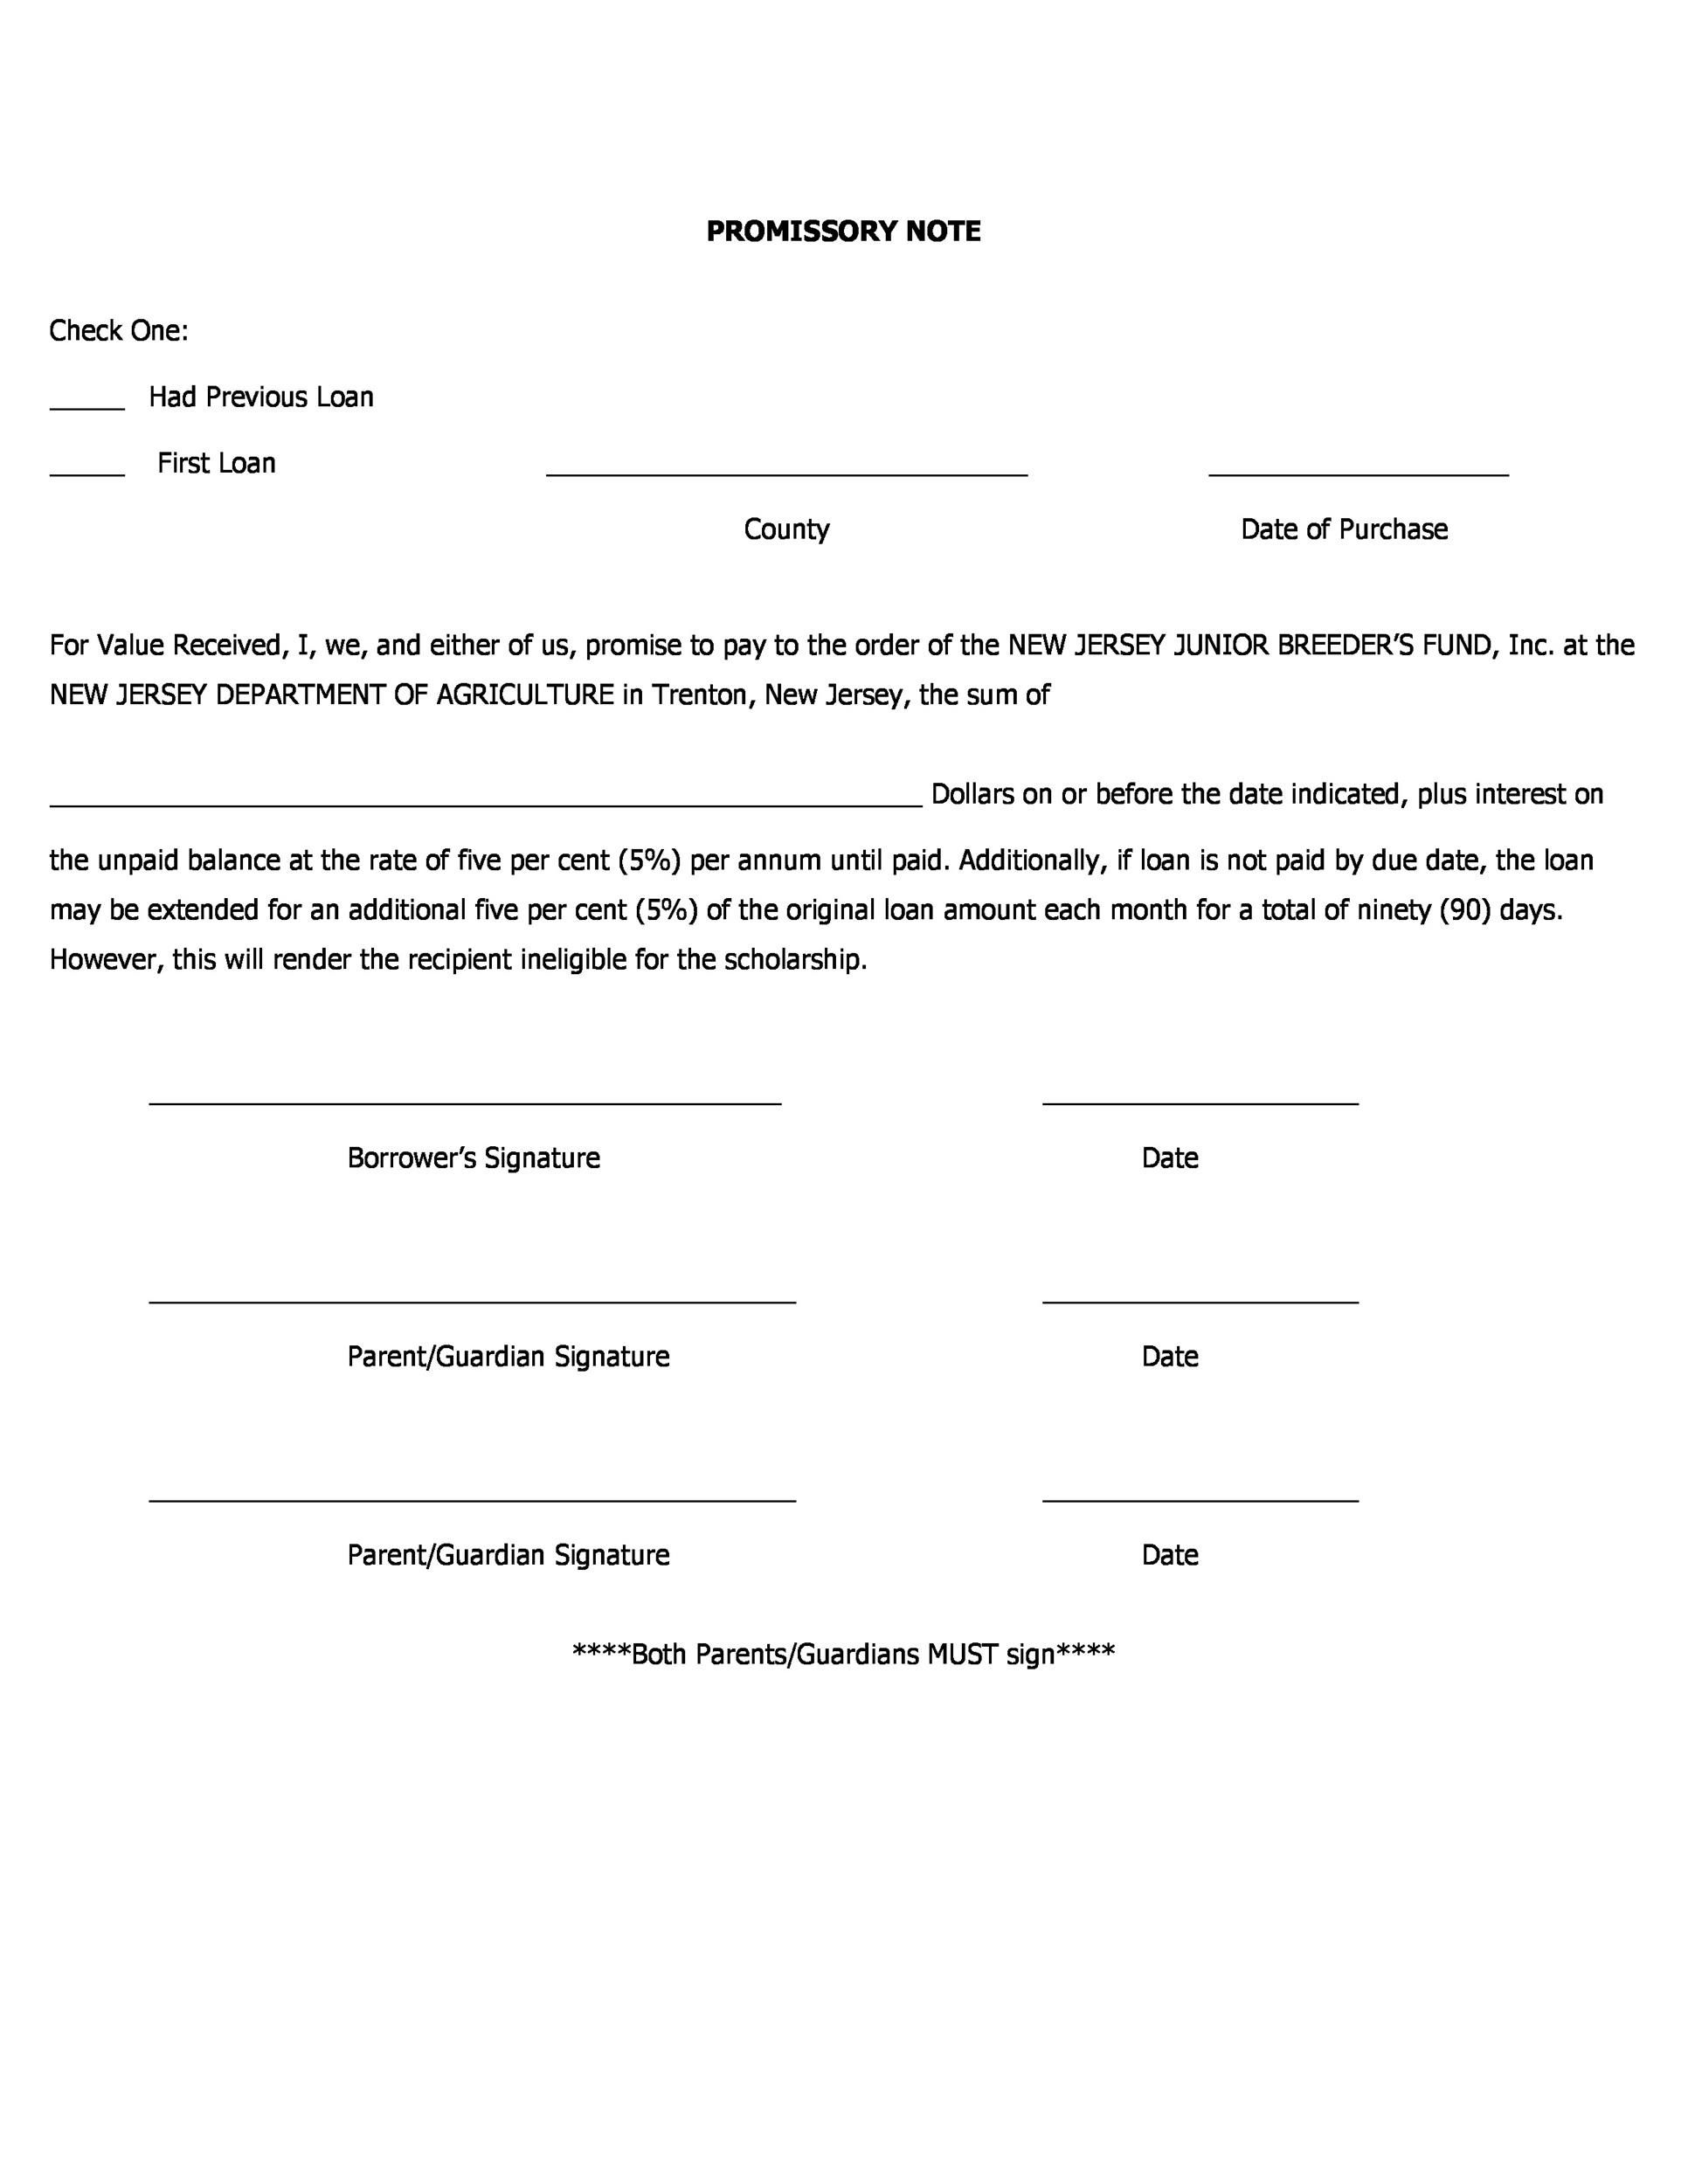 008 Singular Simple Promissory Note Template Image  Form Sample Format Of In IndiaFull